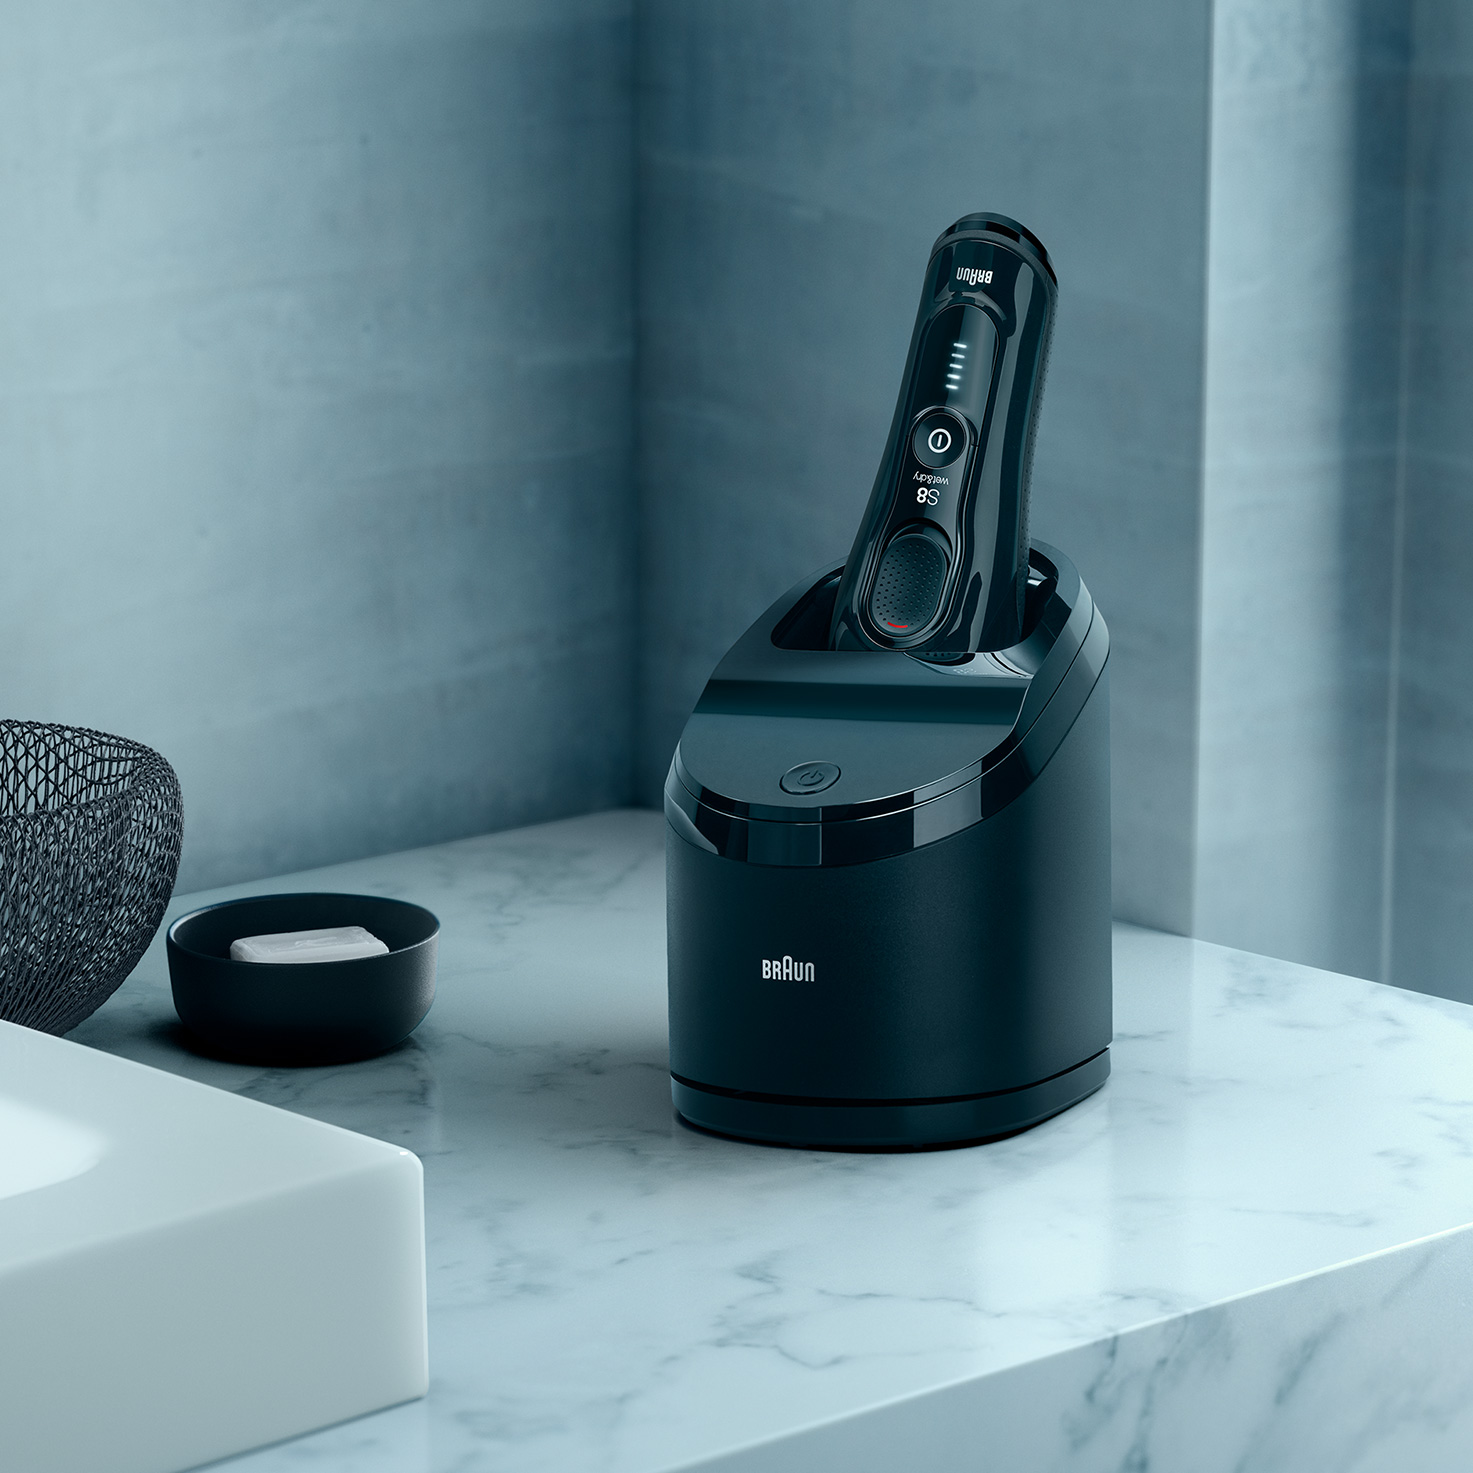 Series 8 8380cc shaver in Clean & Charge station